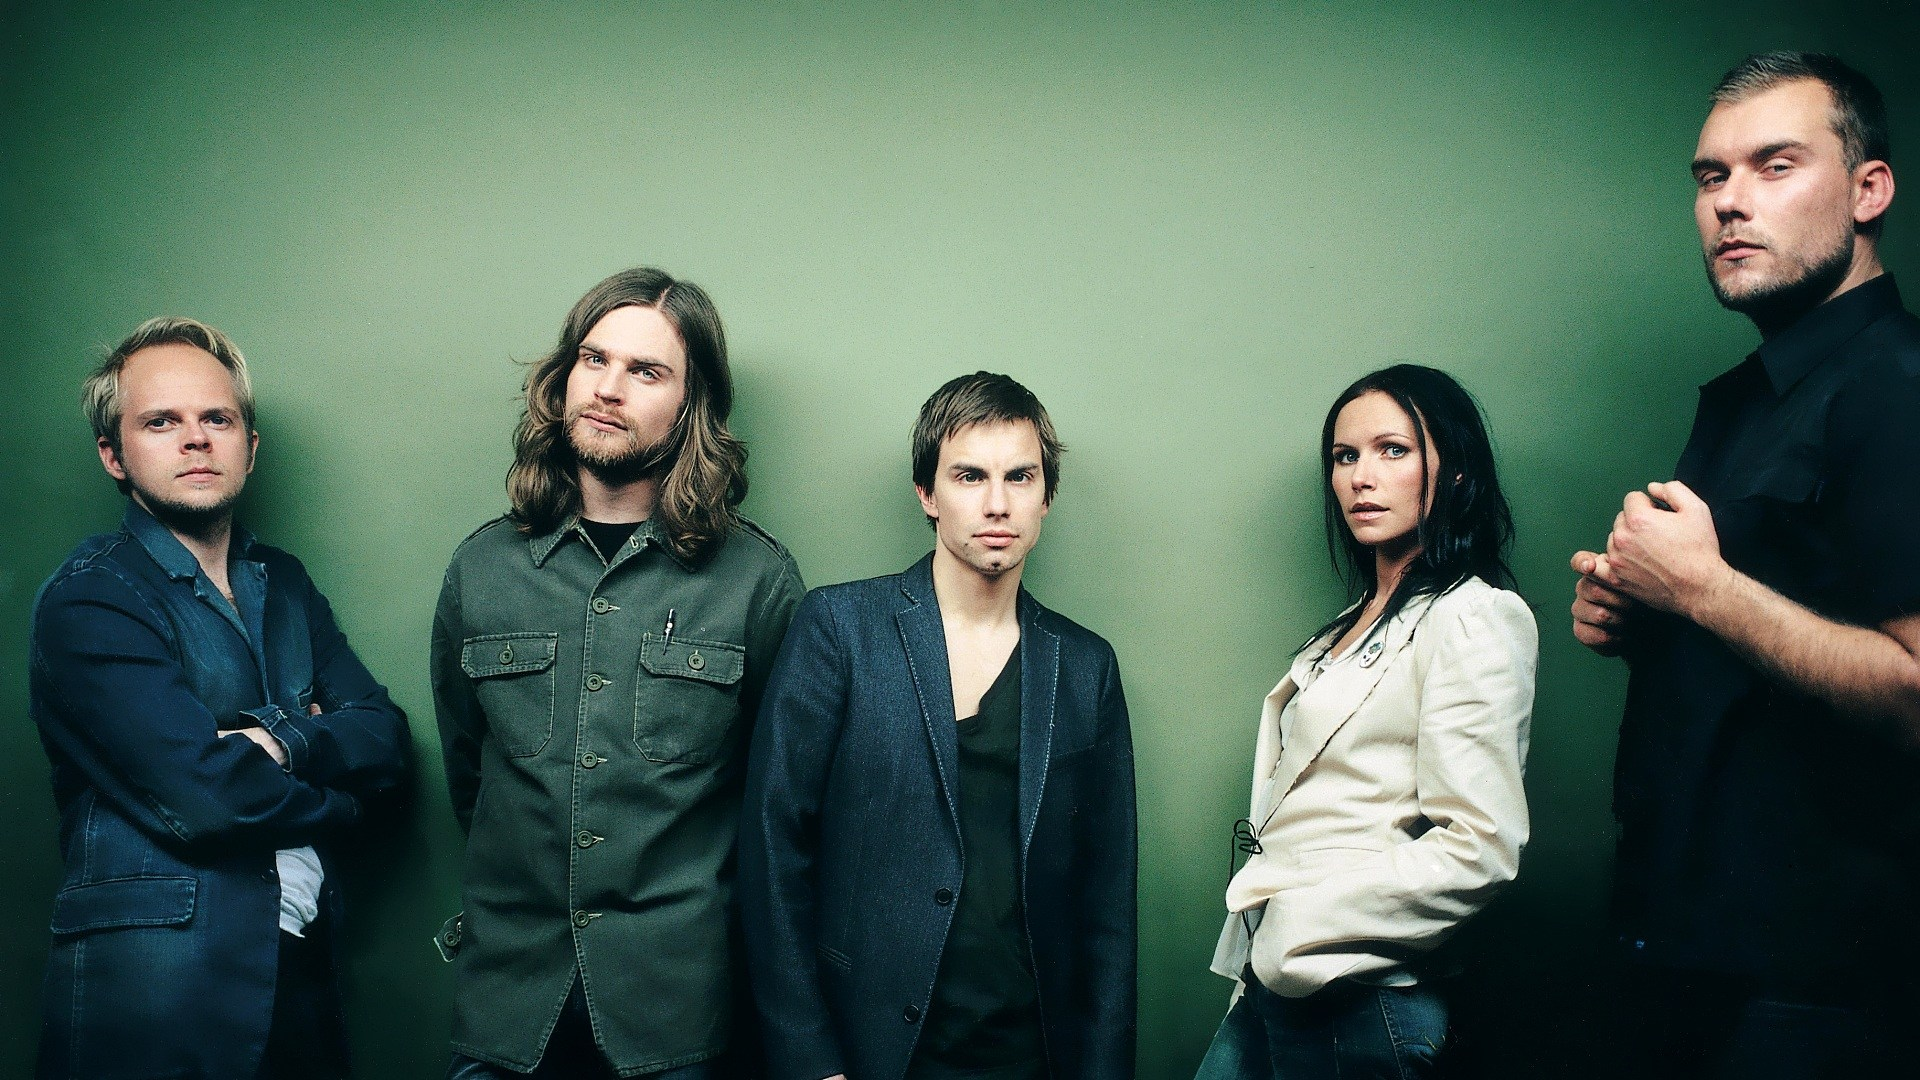 HQ The Cardigans Wallpapers | File 577.14Kb